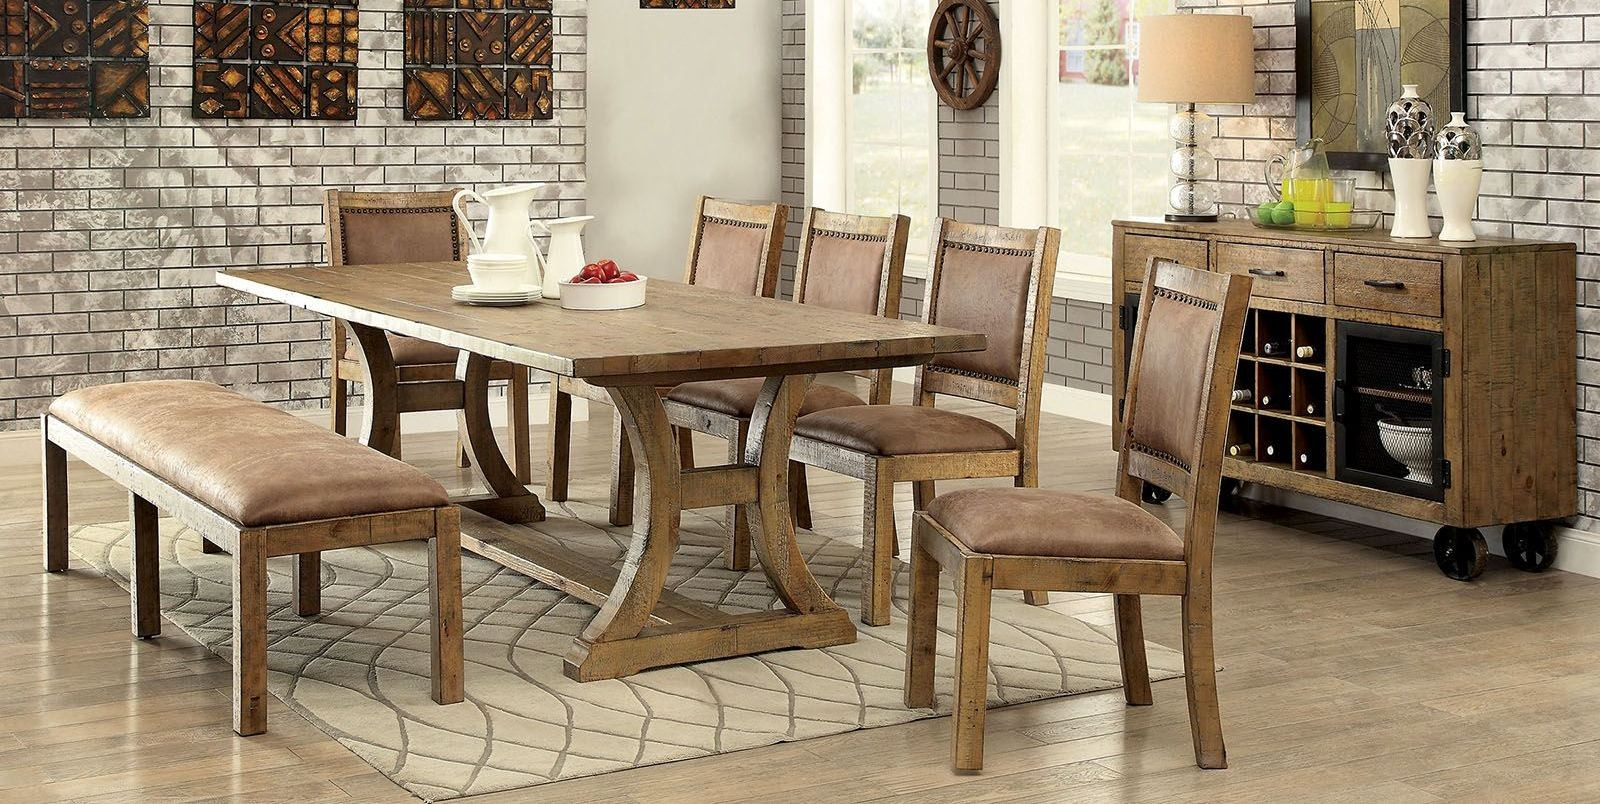 Gianna Rustic Pine Extendable Rectangular Dining Room Set ...